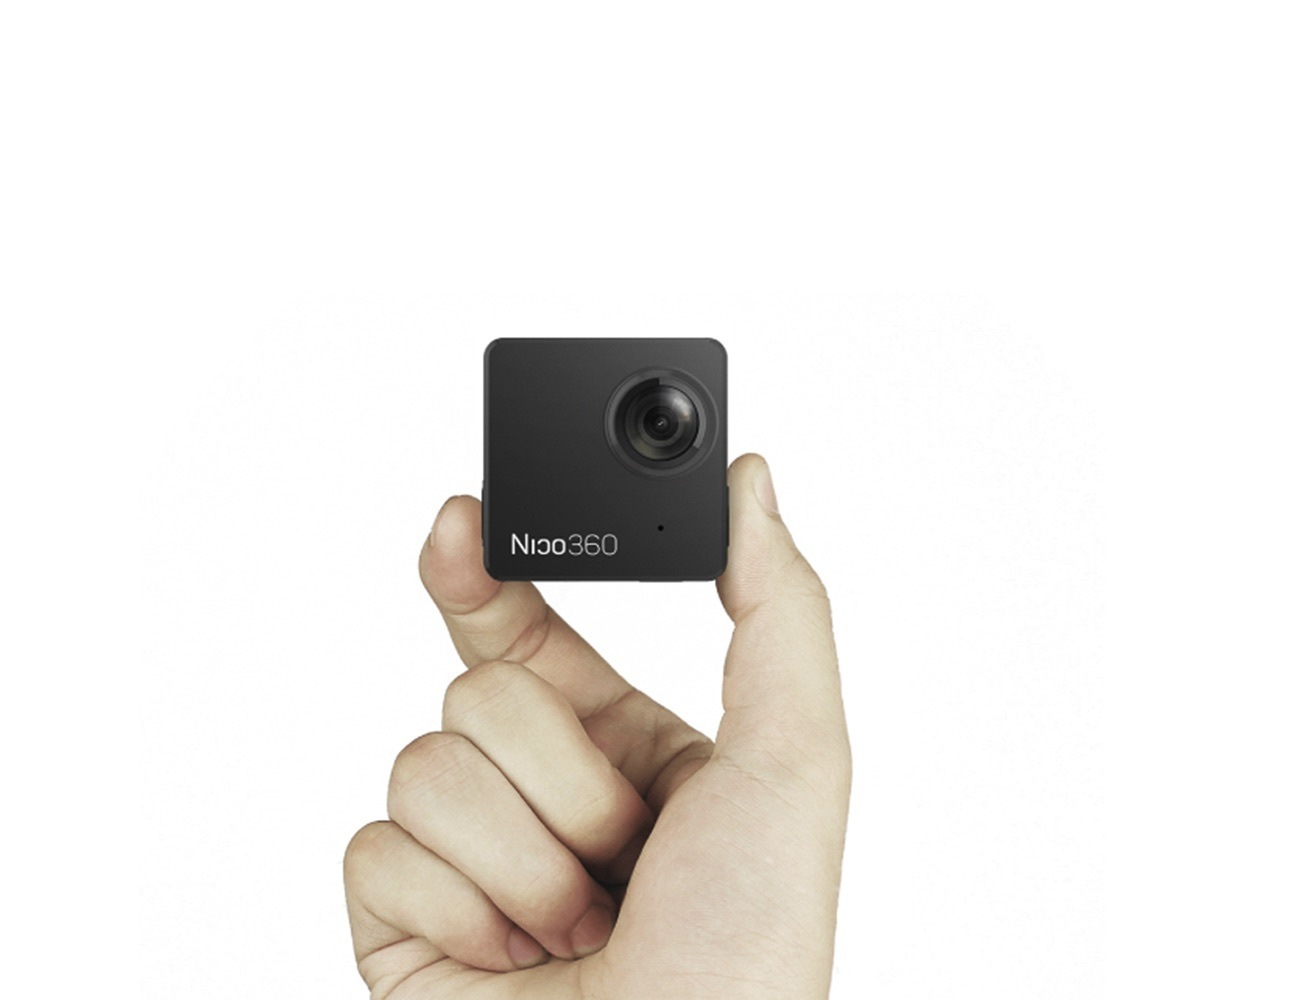 Nico360 Affordable VR Camera